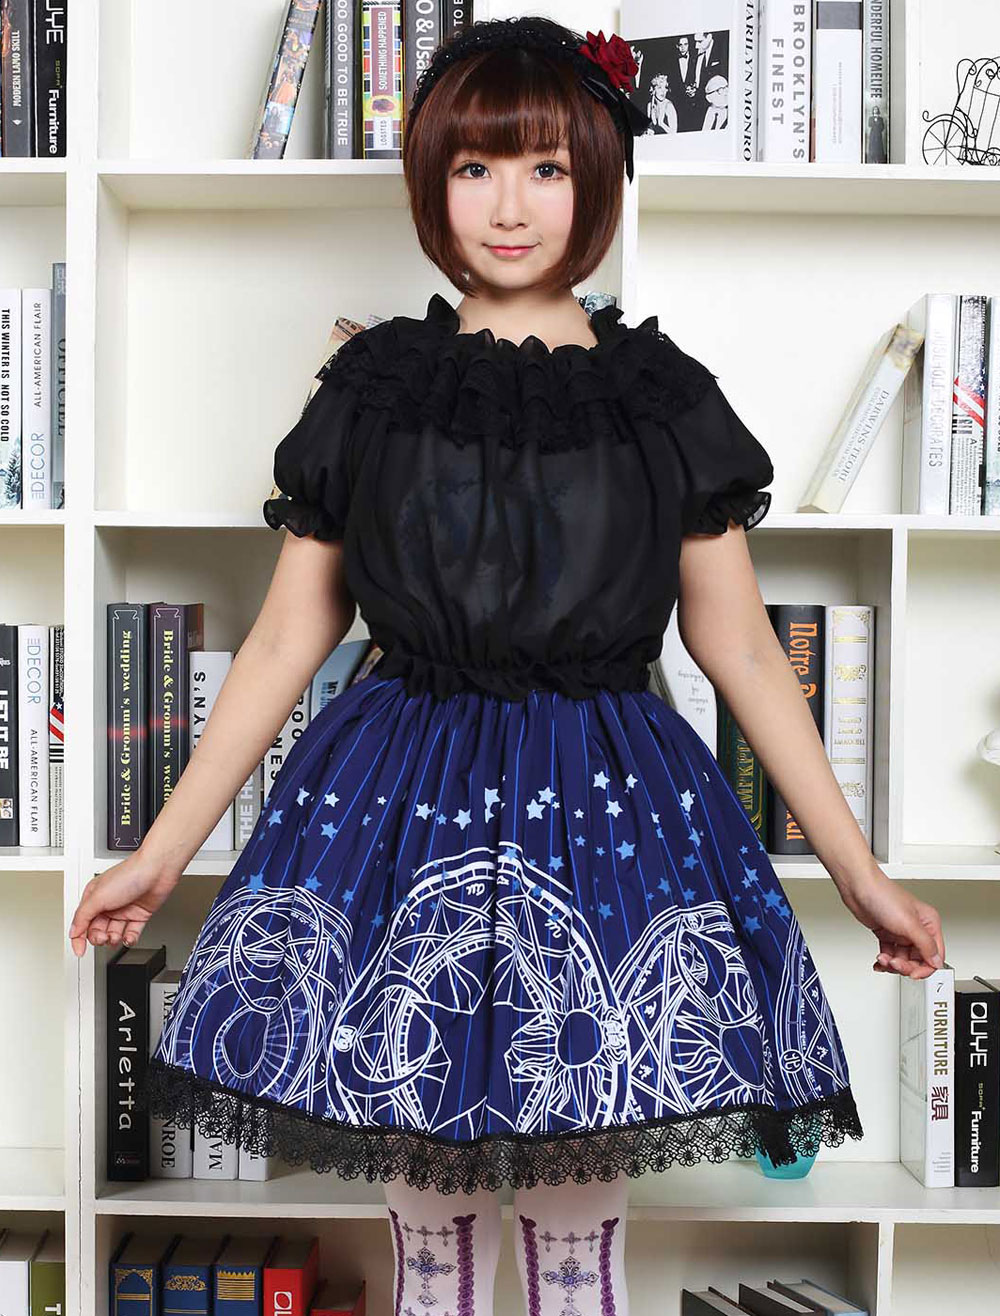 Buy Blue Lolita Dress Cute Lolita Lace Skirt With Magic Circle Print for $33.11 in Milanoo store